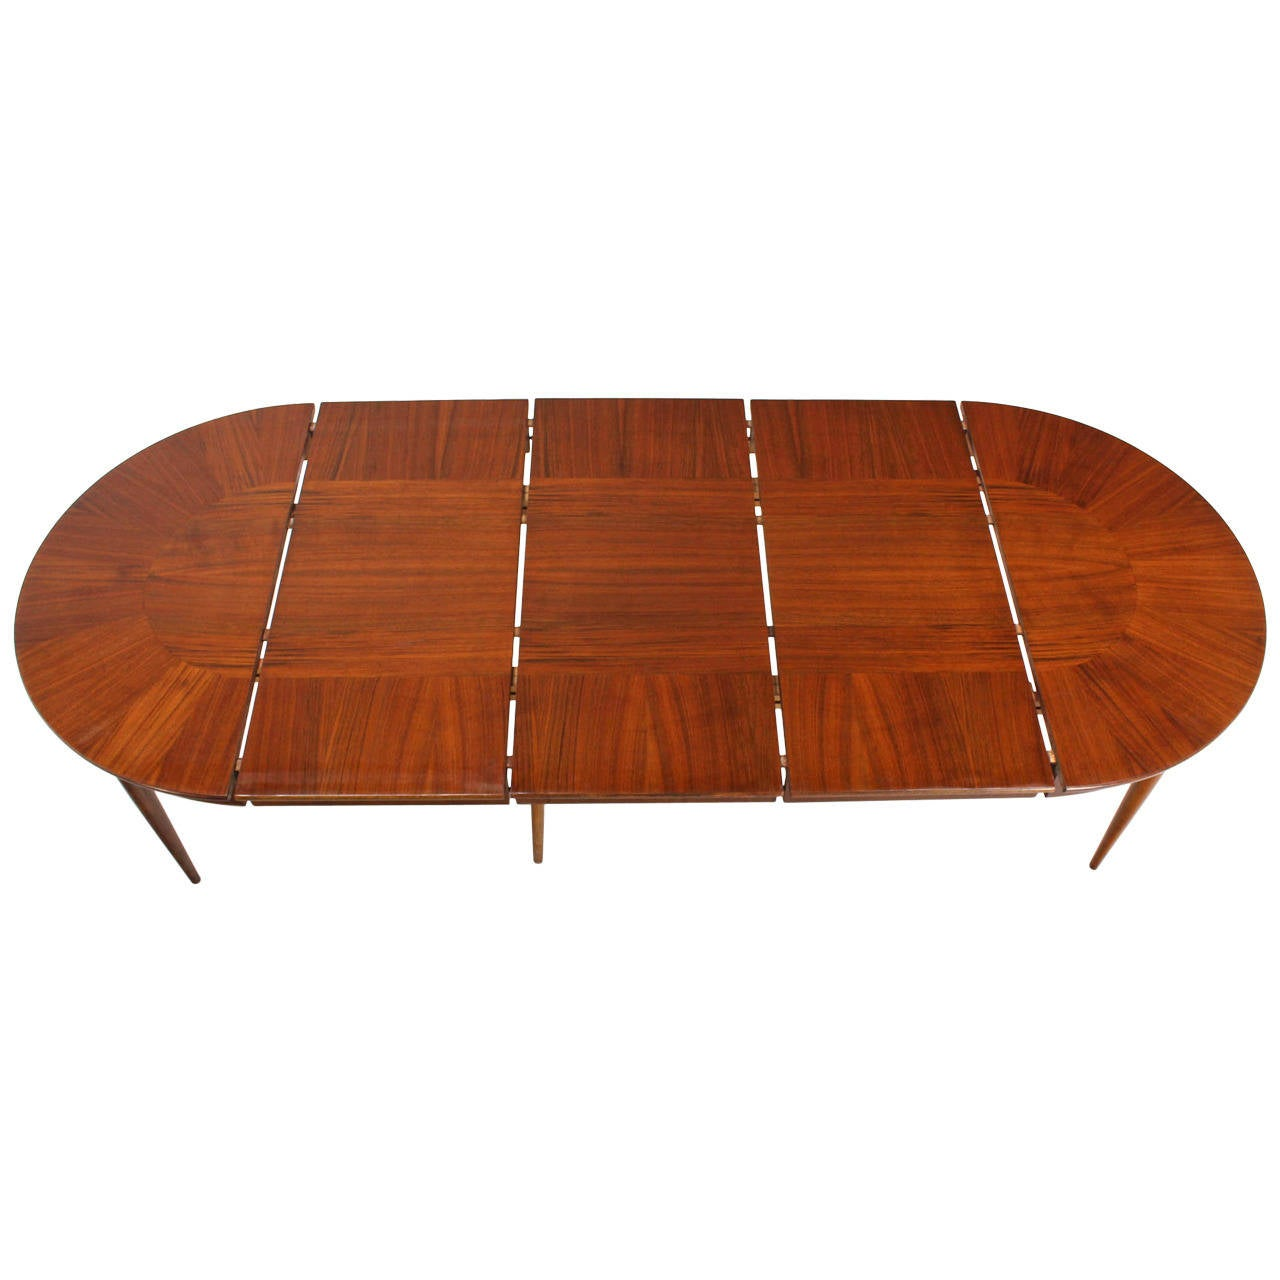 Erno Fabry Mid Century Modern Round Walnut Dining Table With Three